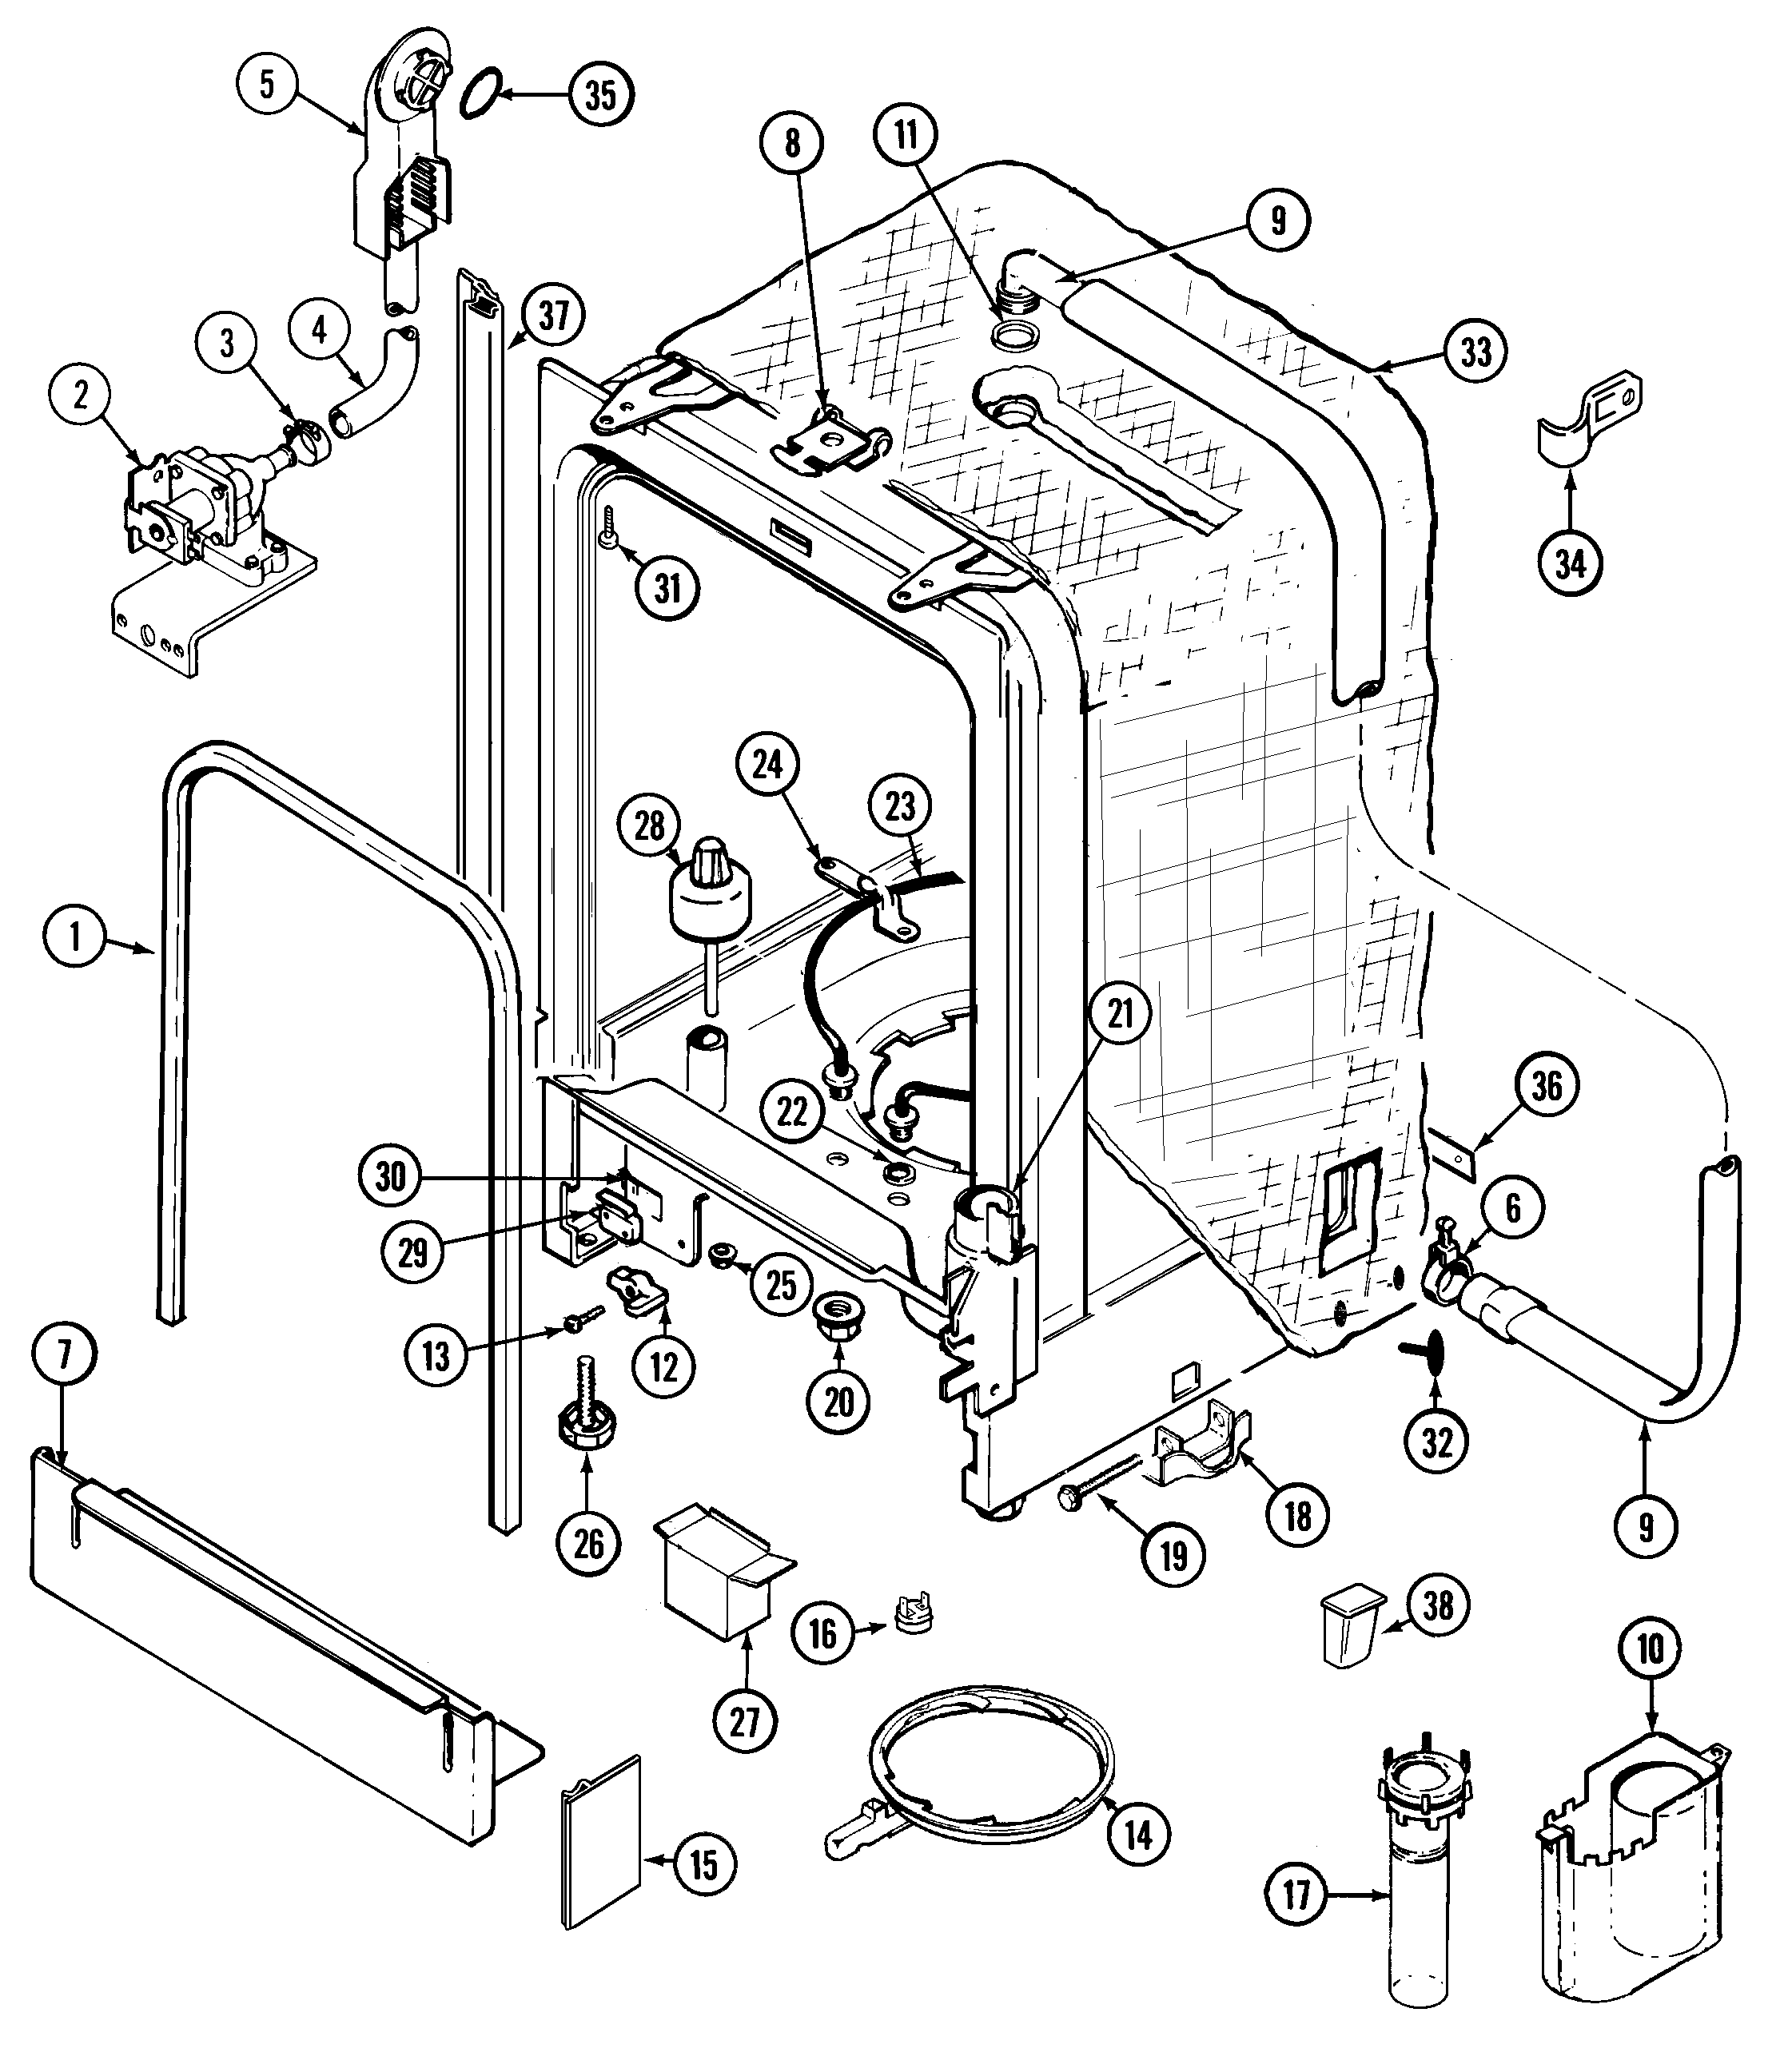 Frigidaire Washing Machine Wiring Diagram